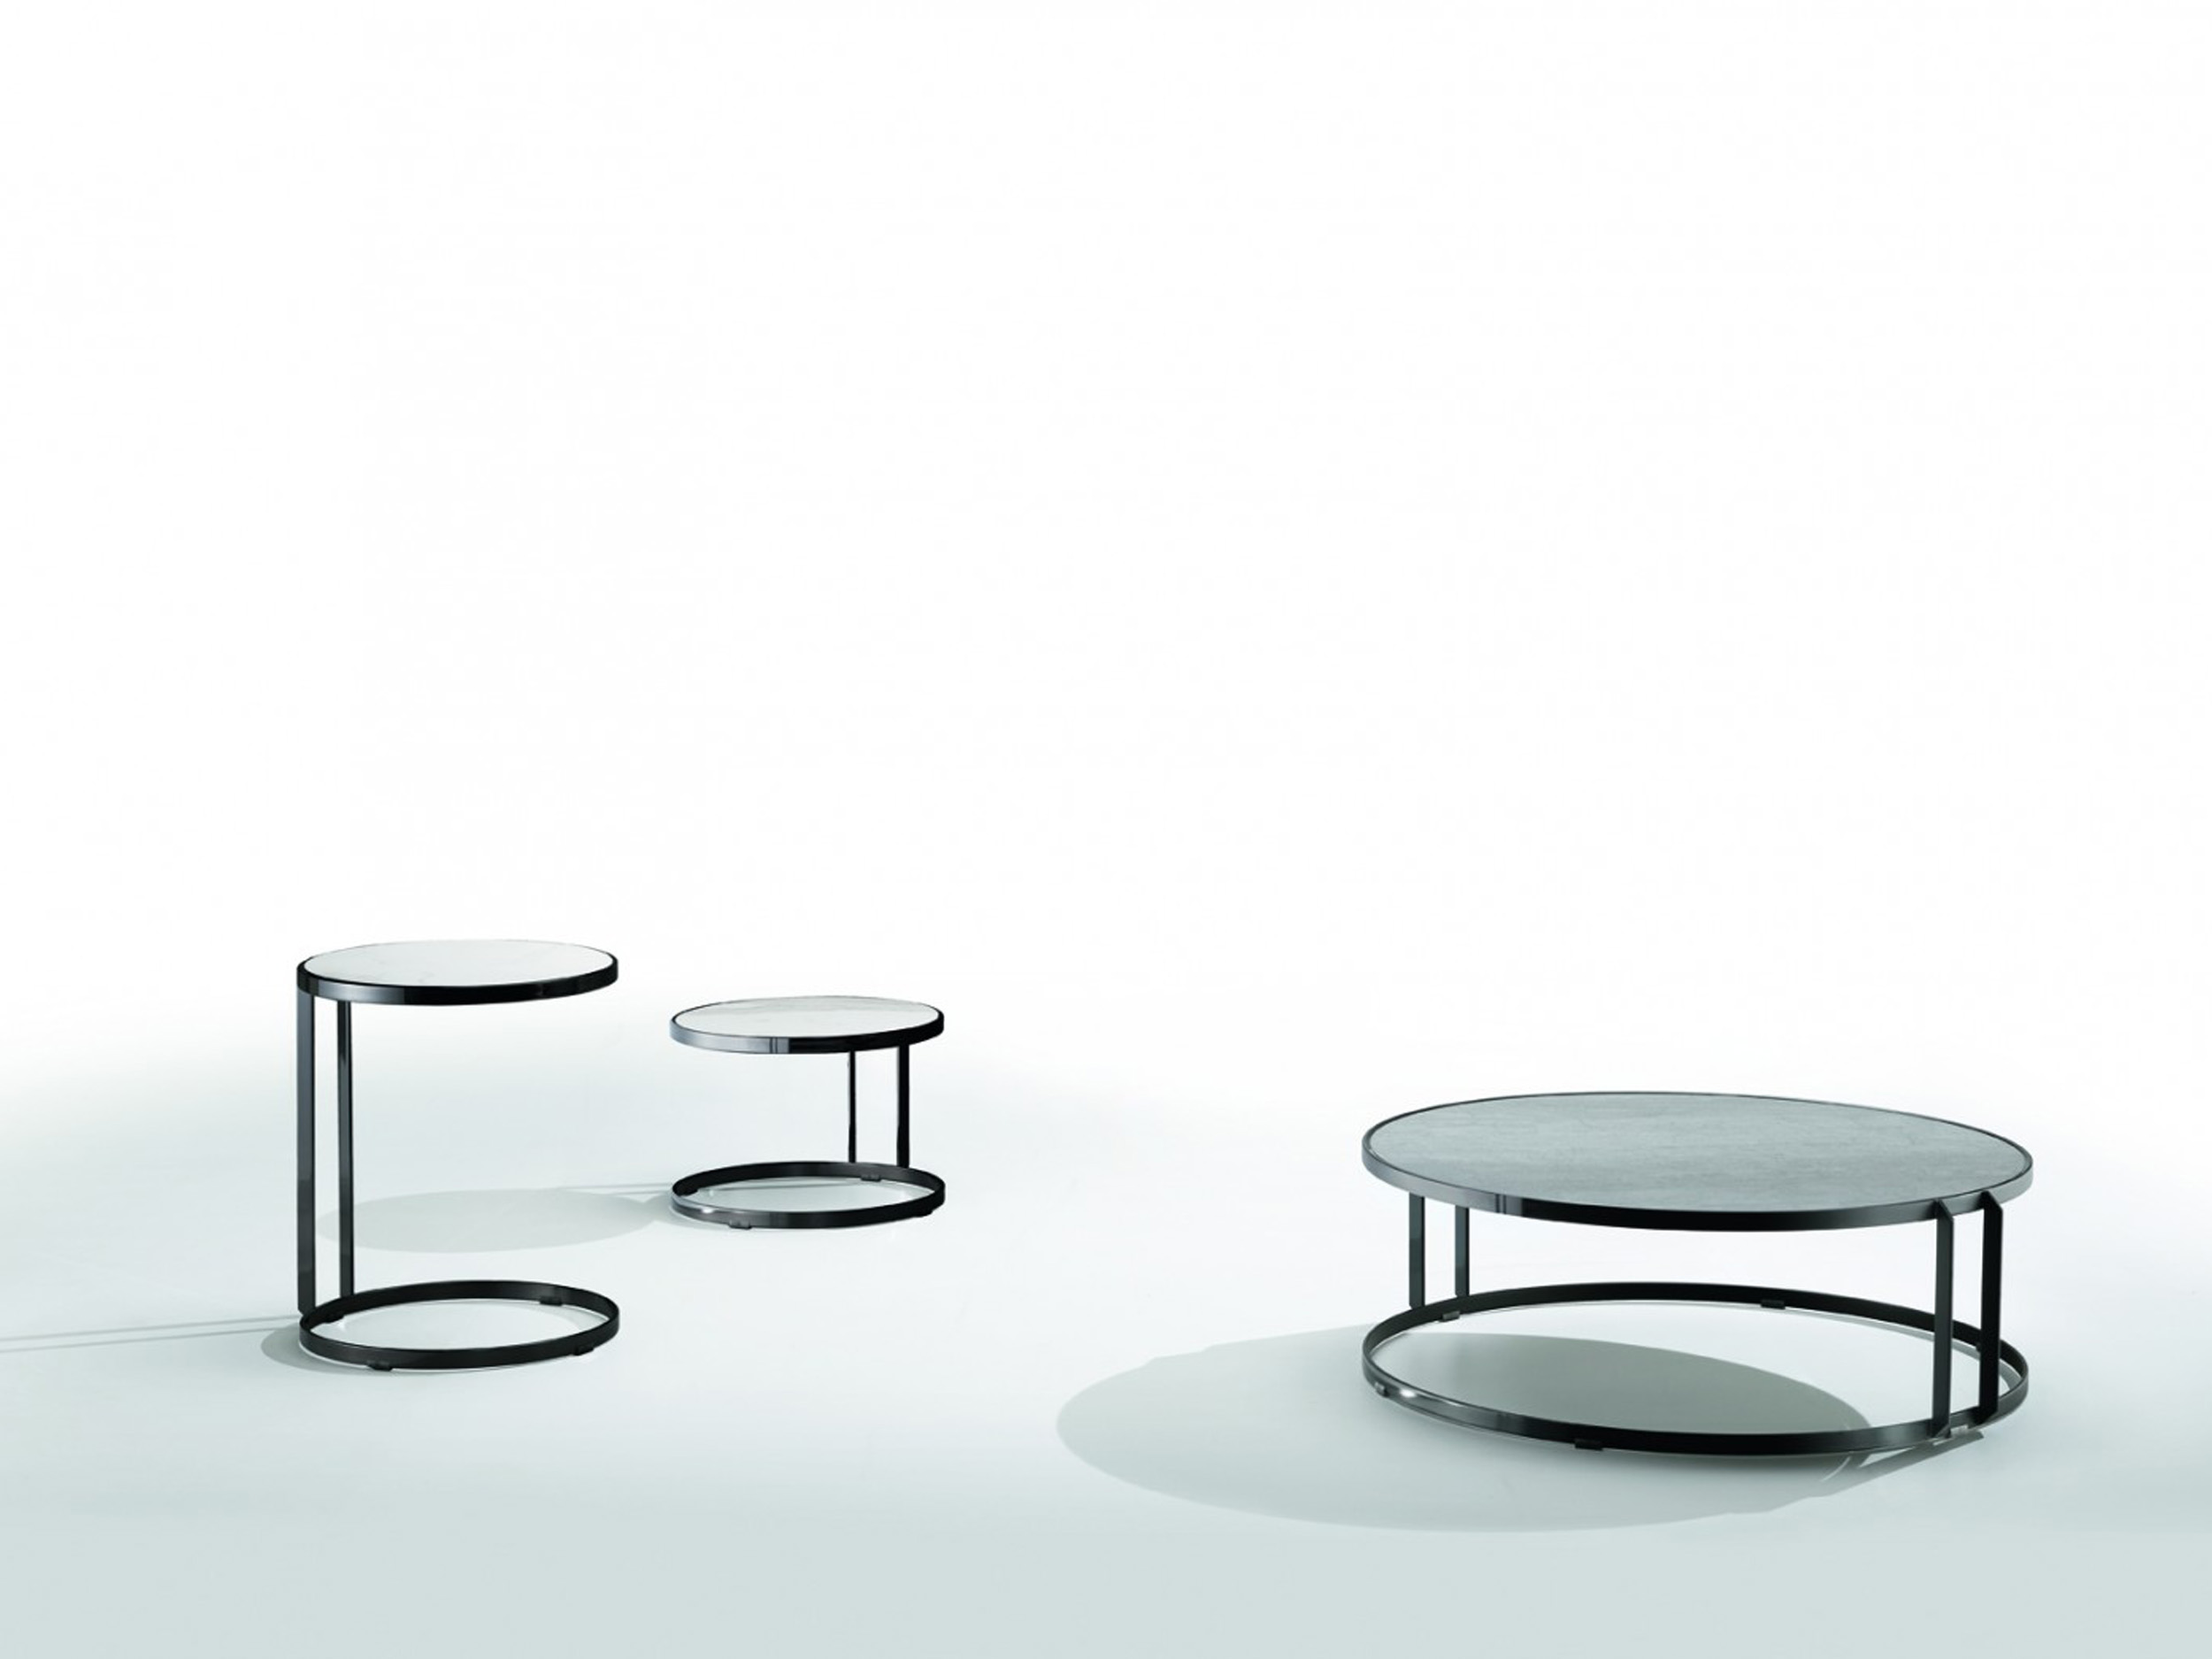 Joint Central/Side Table